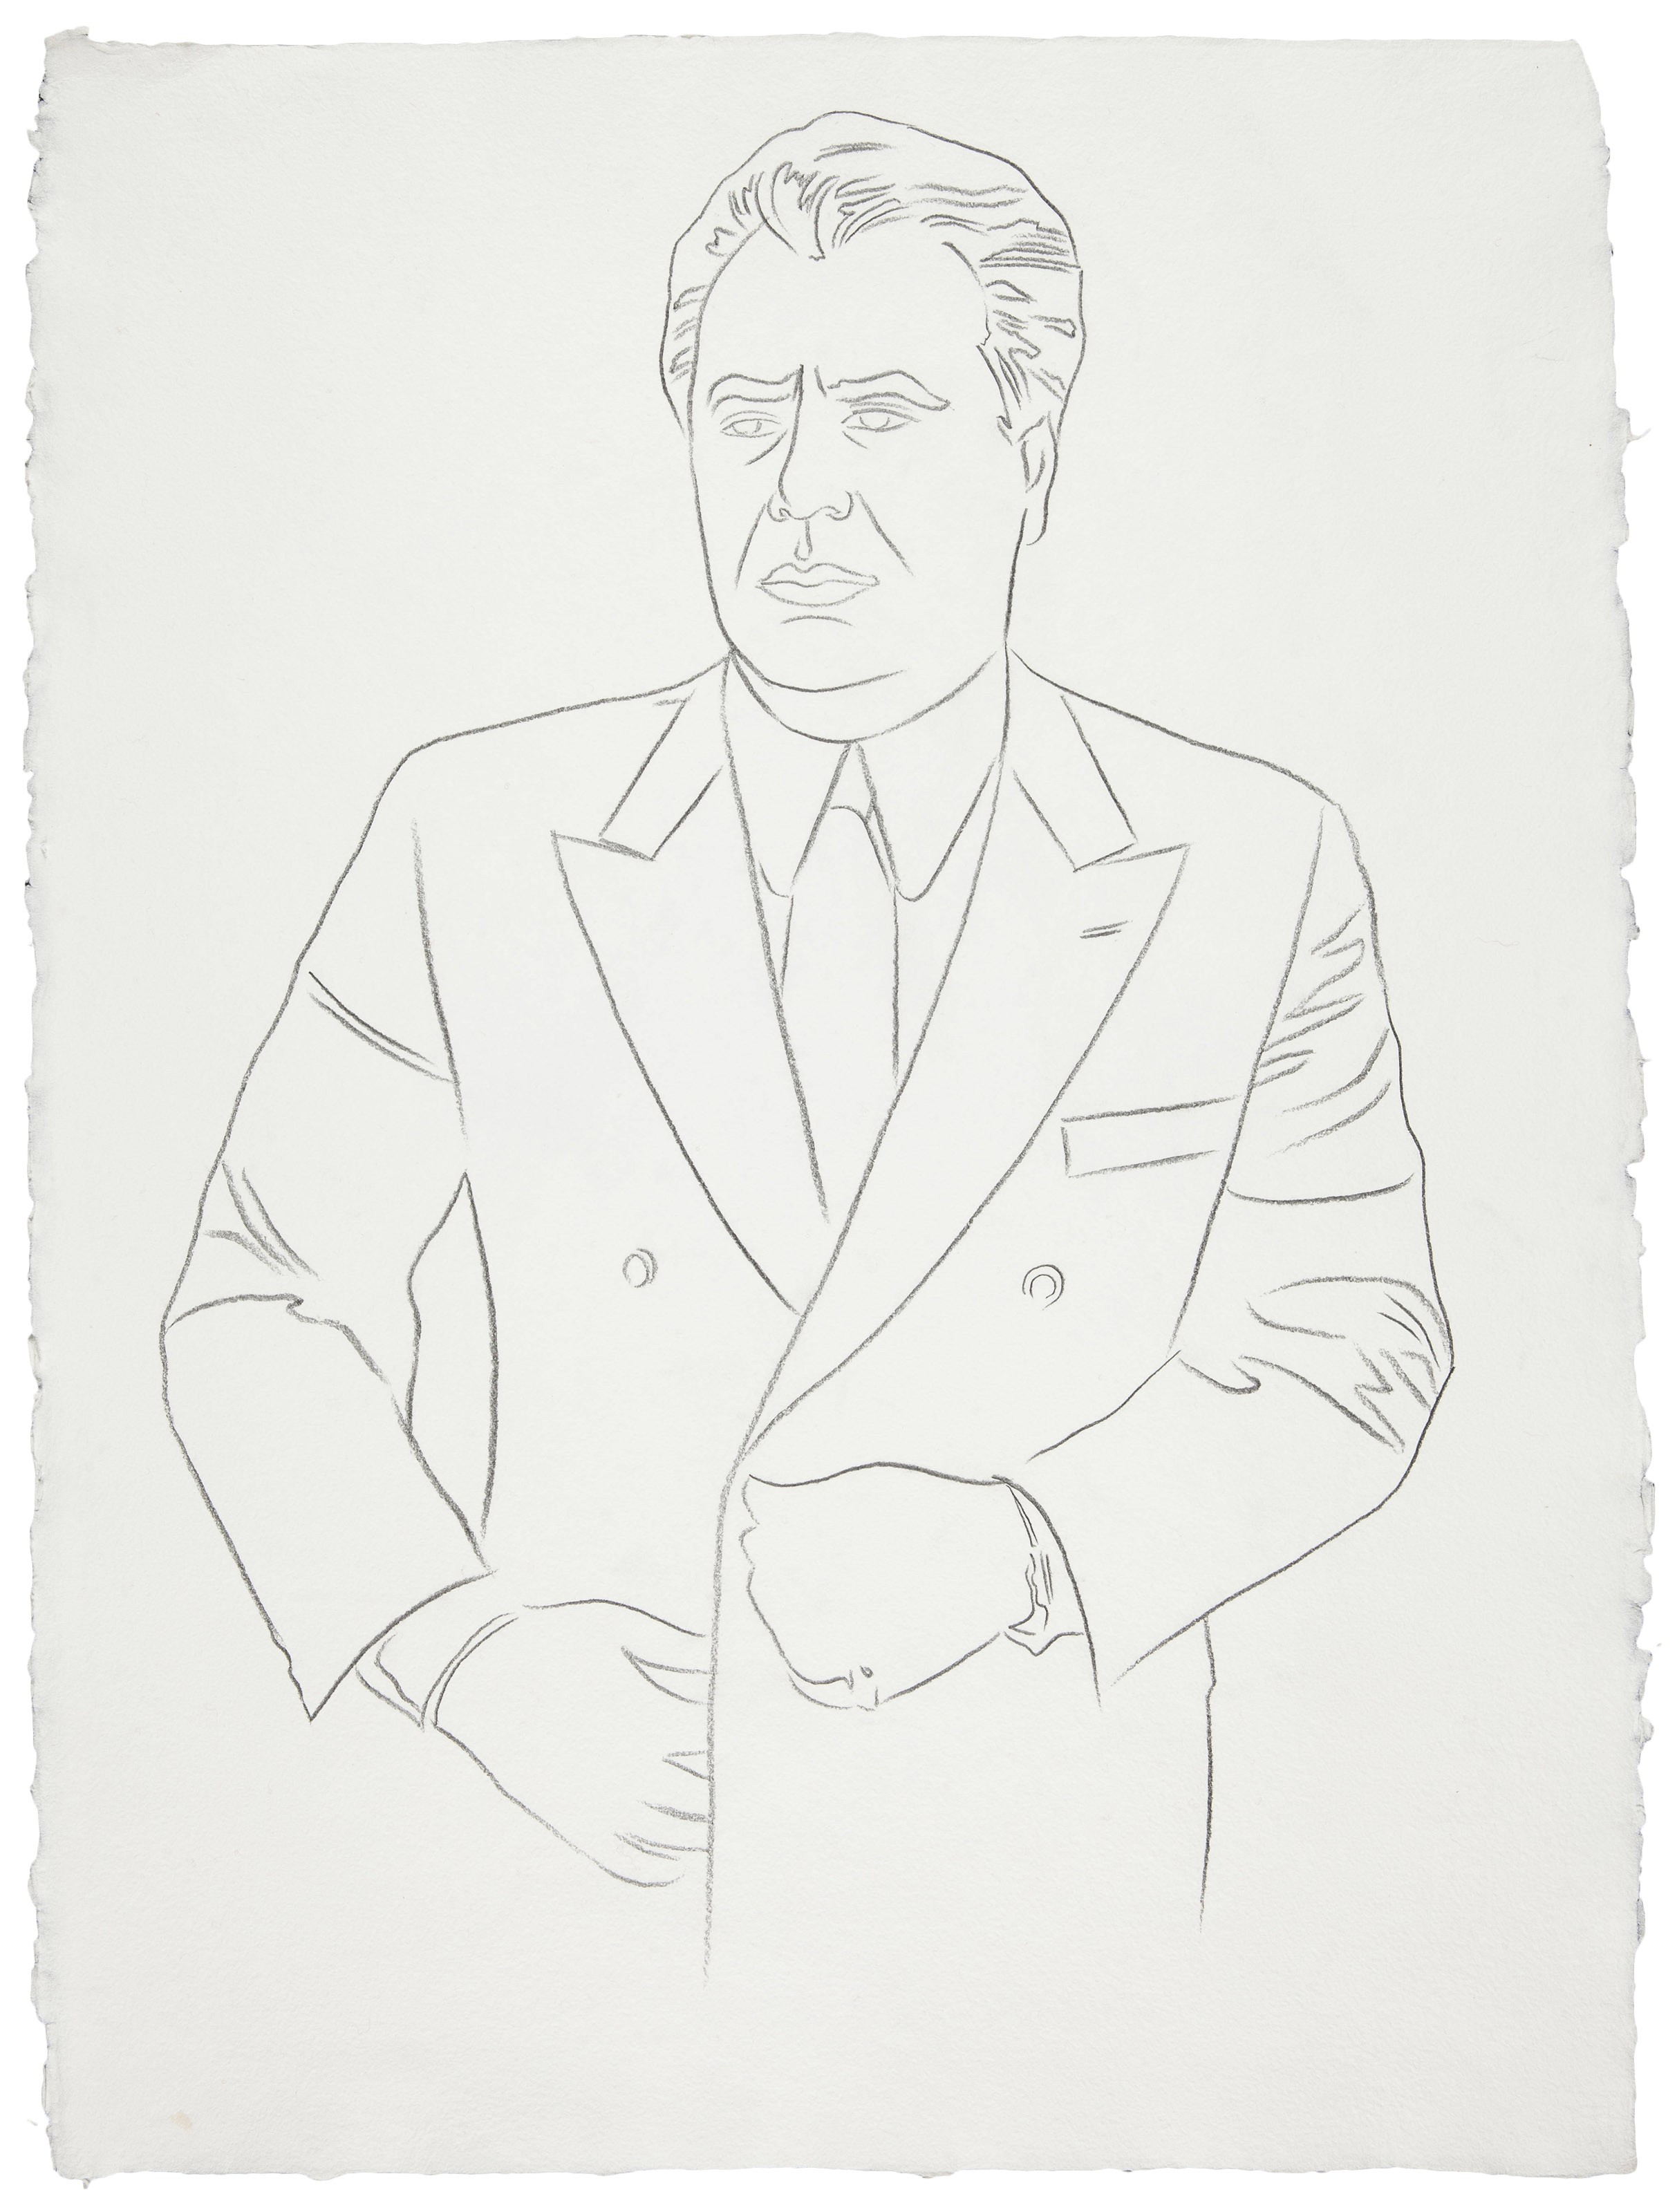 John Gotti, 1986, pencil on paper, 80x60